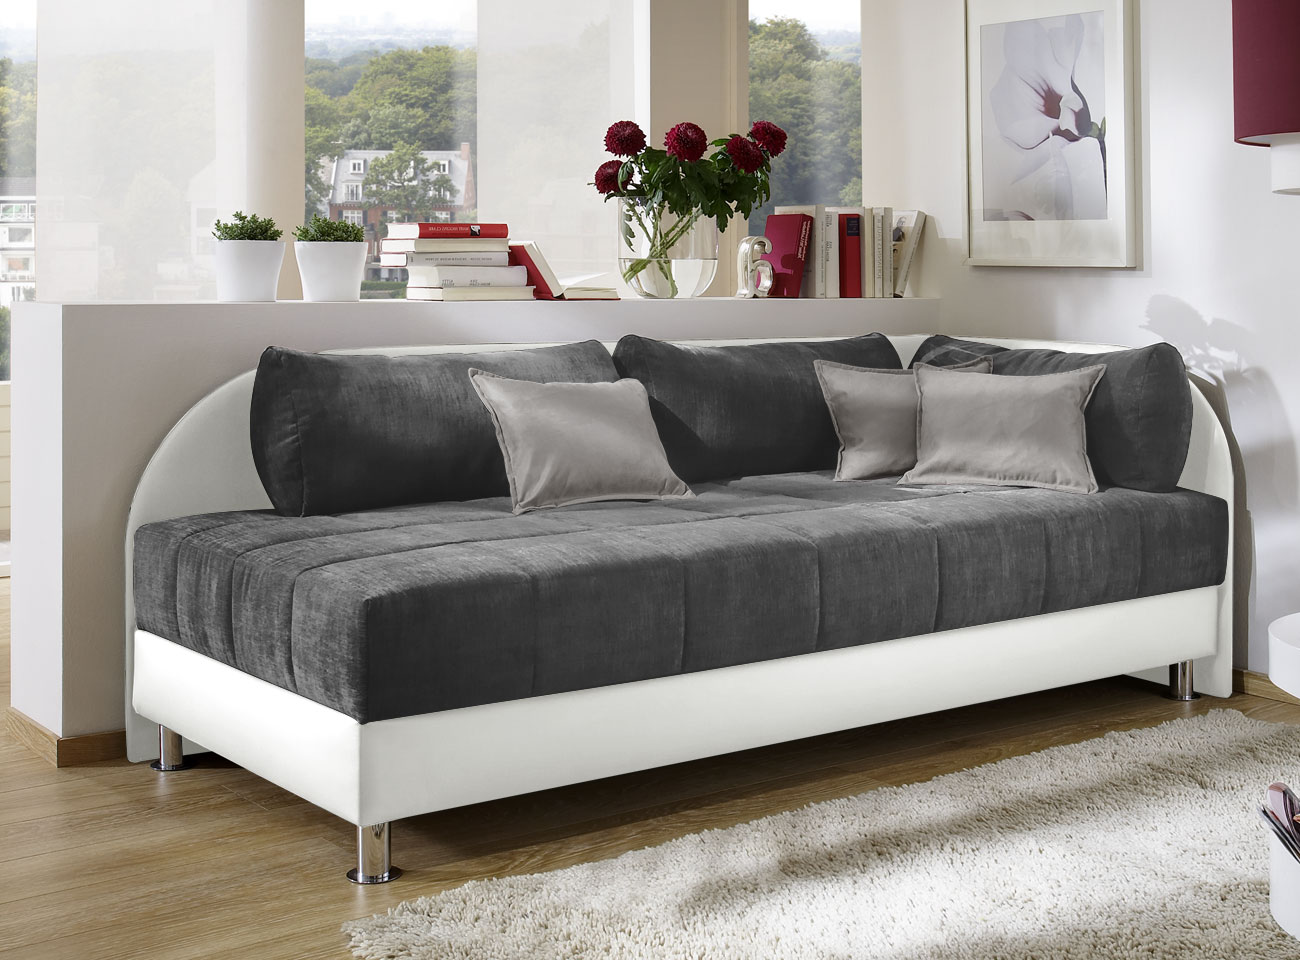 studioliege enea polsterliege in 90x200cm mit bettkasten. Black Bedroom Furniture Sets. Home Design Ideas